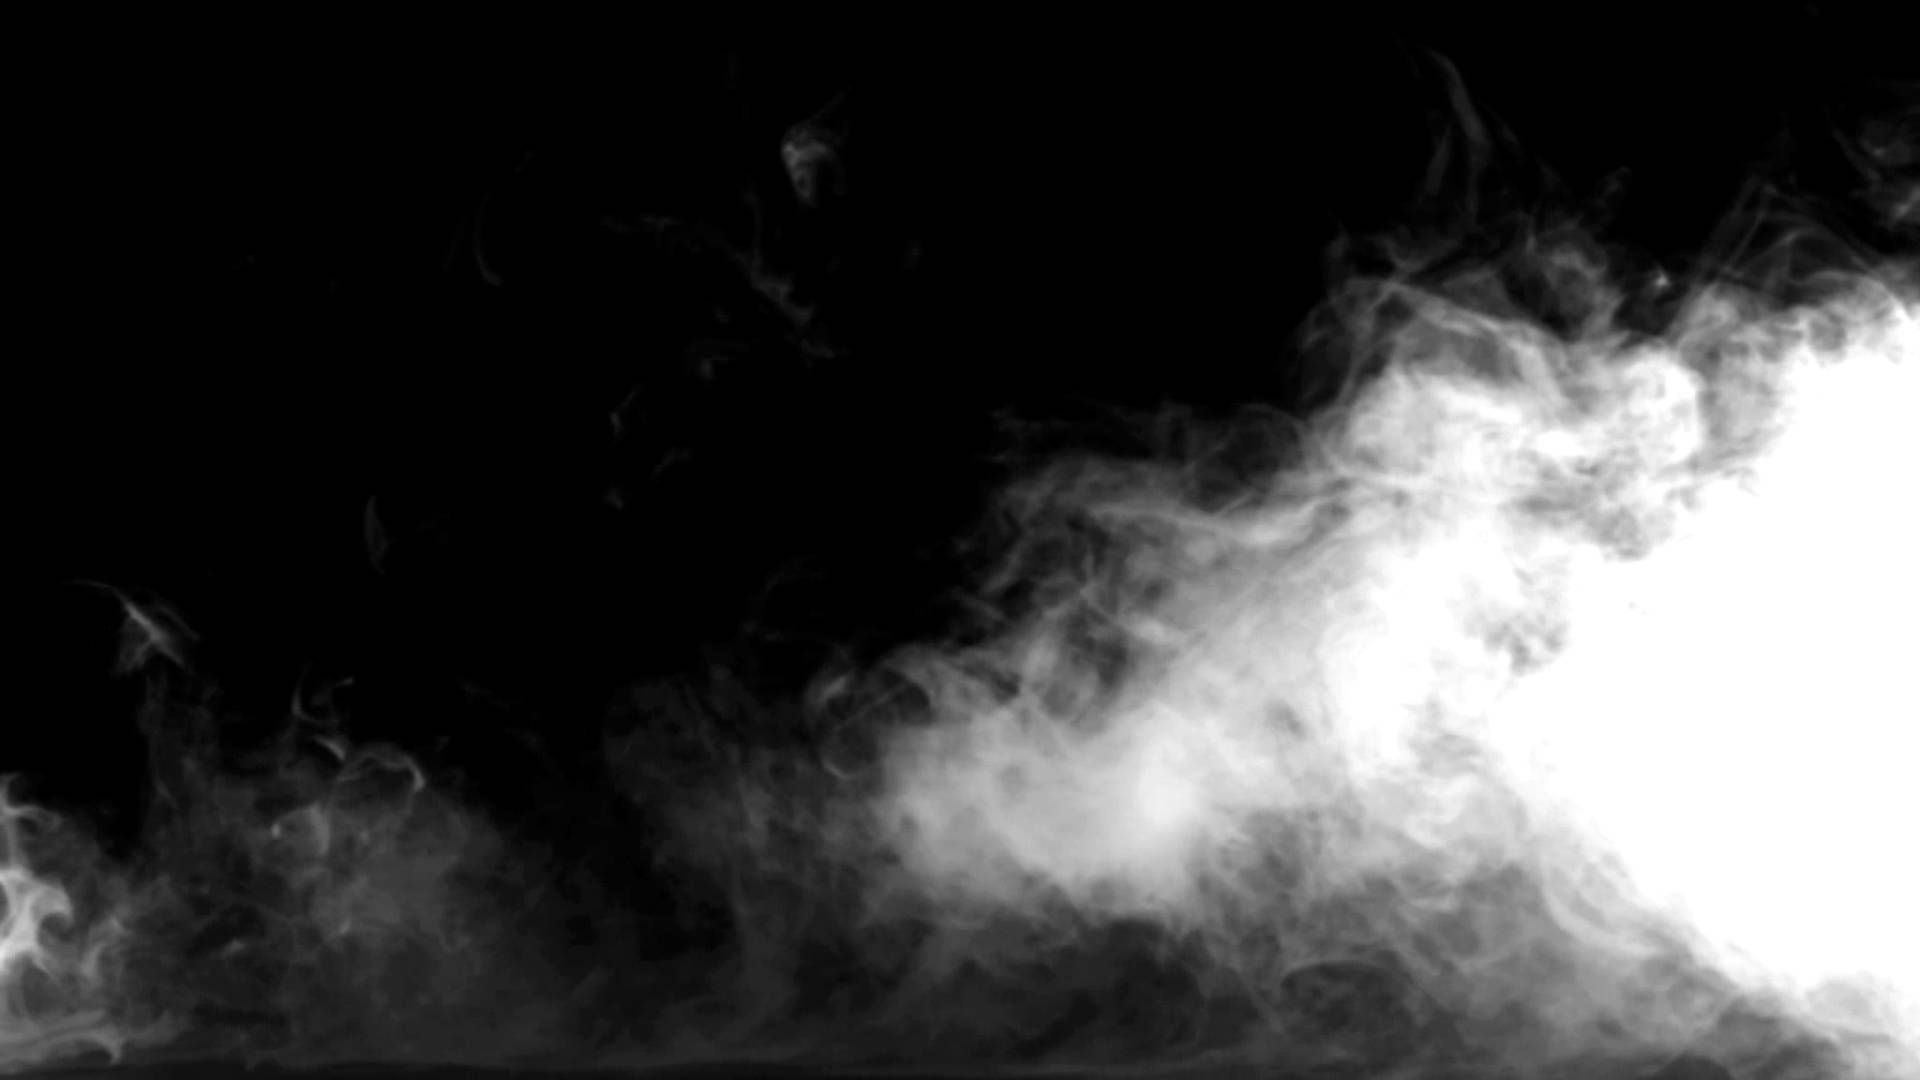 Smoky Wallpaper Posted By Zoey Anderson